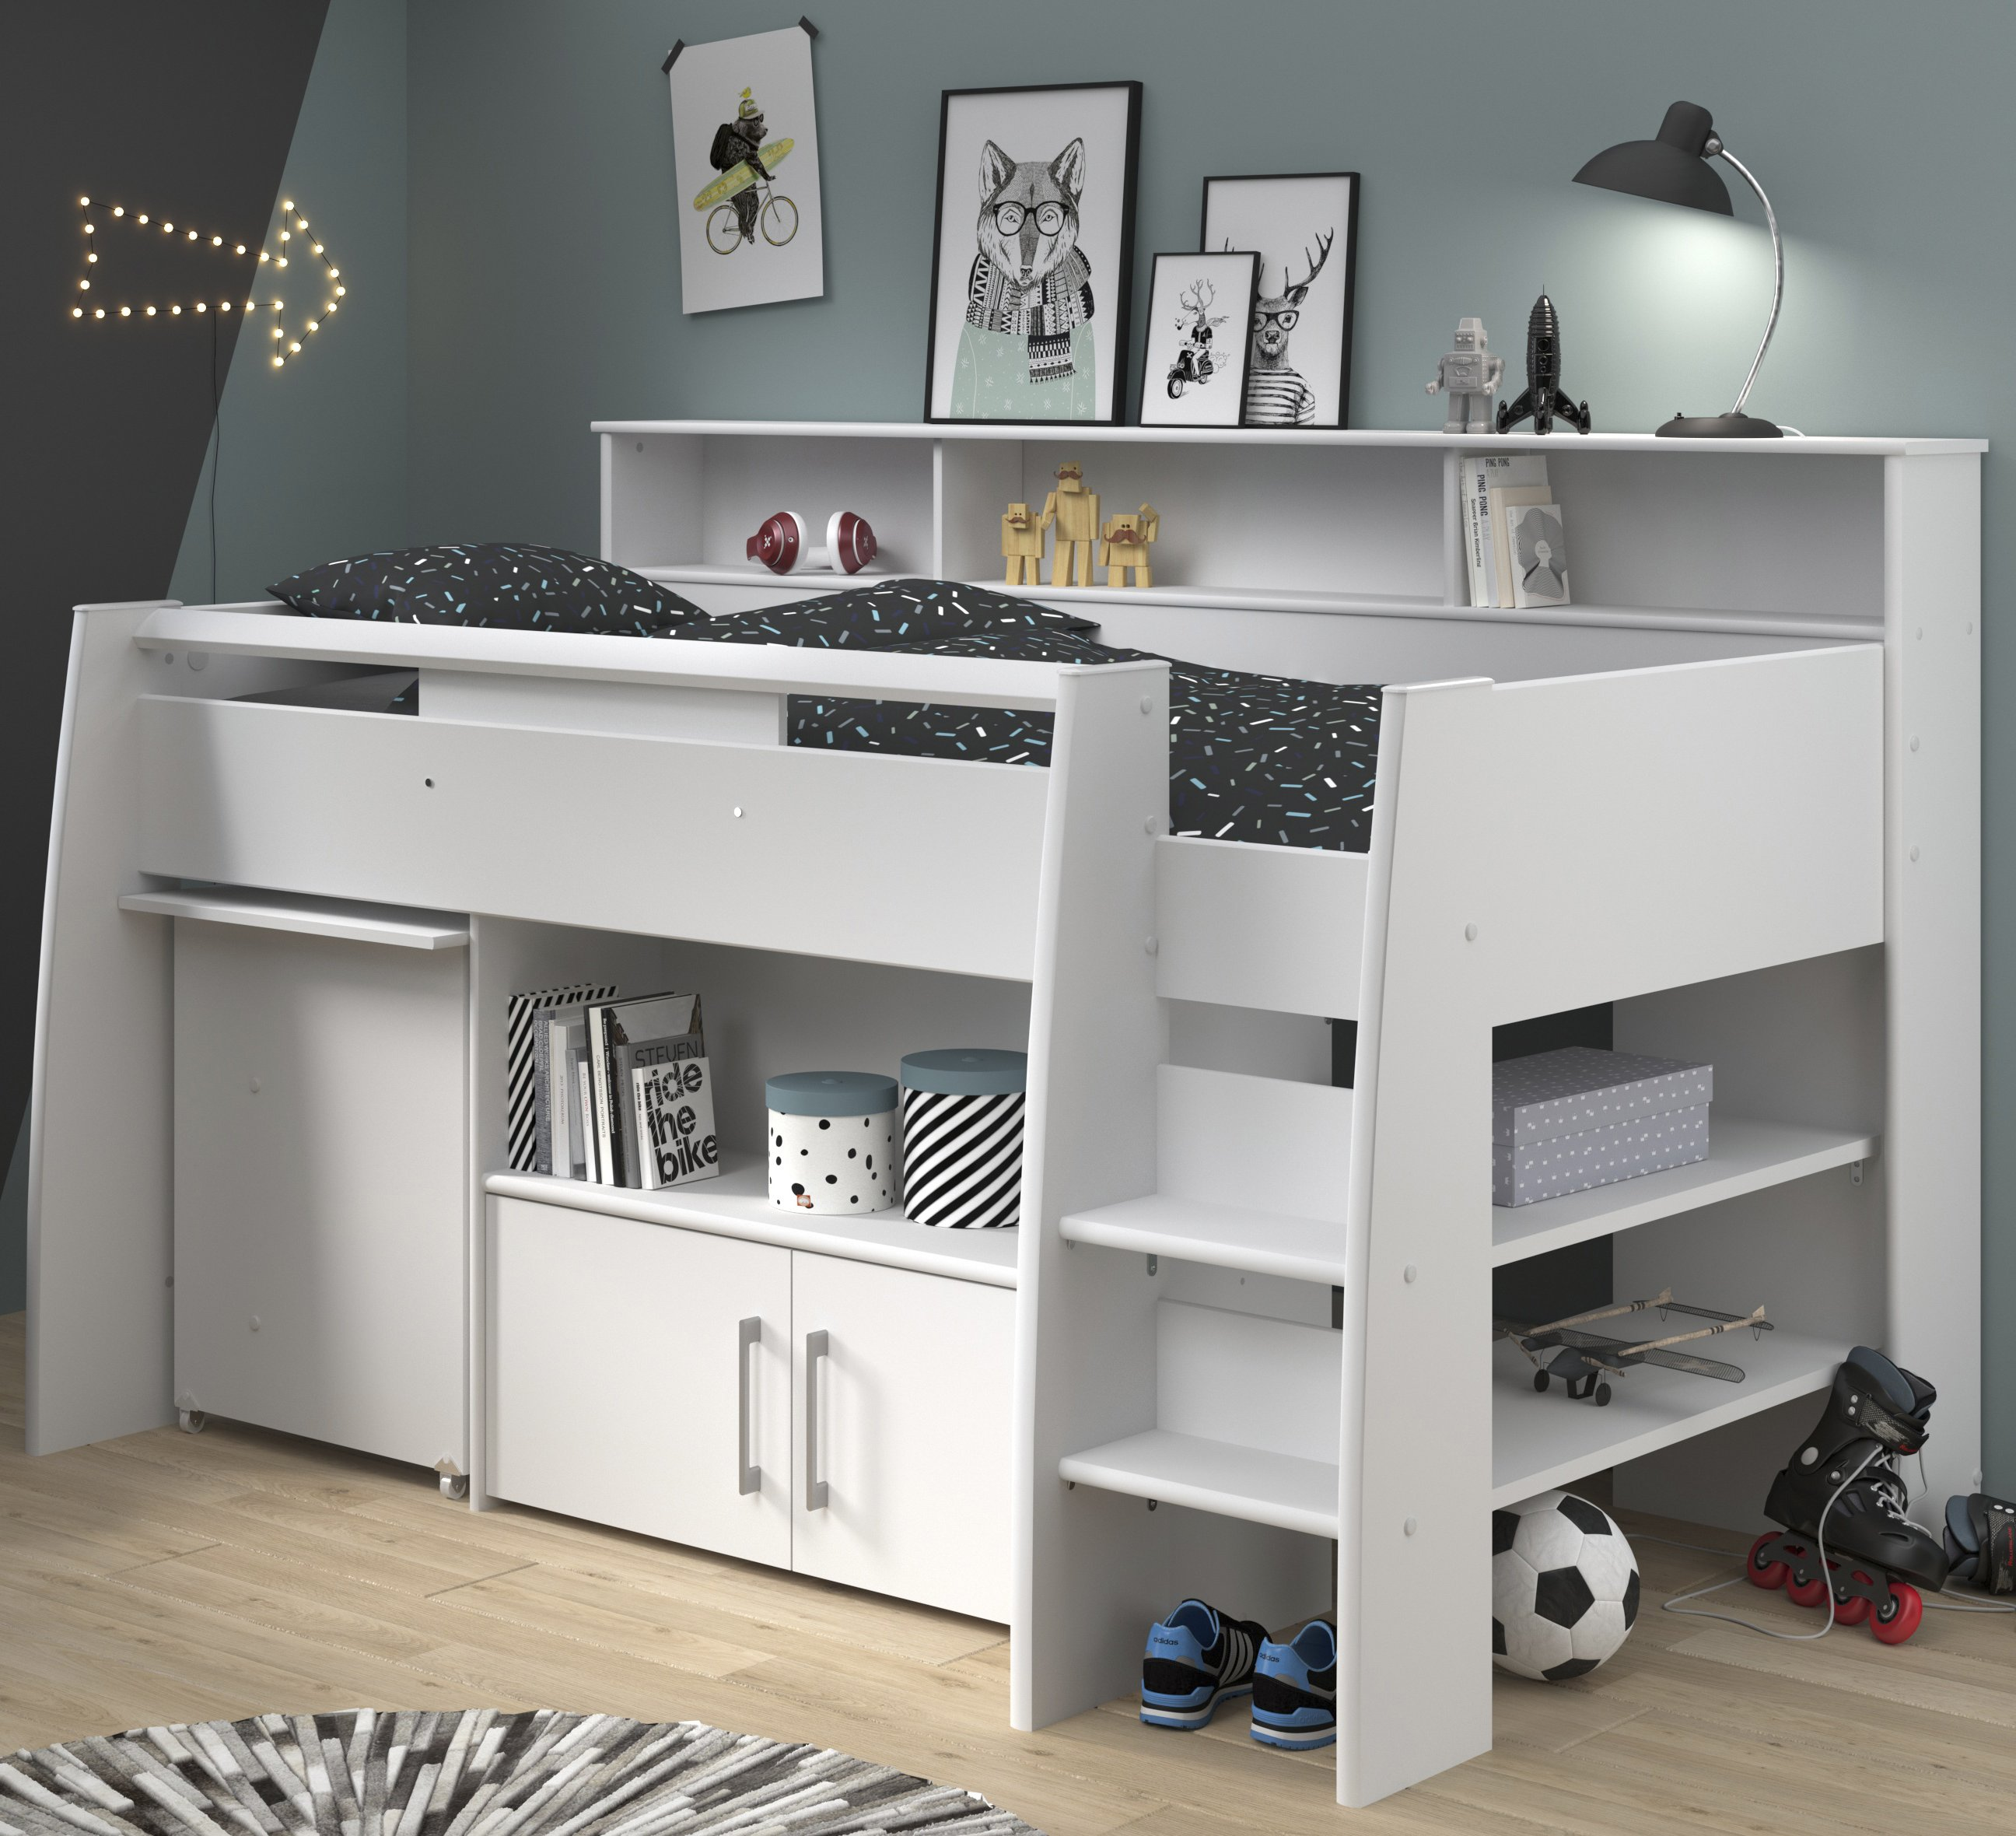 Bed Over Stair Box Google Search: White For Children In S.A